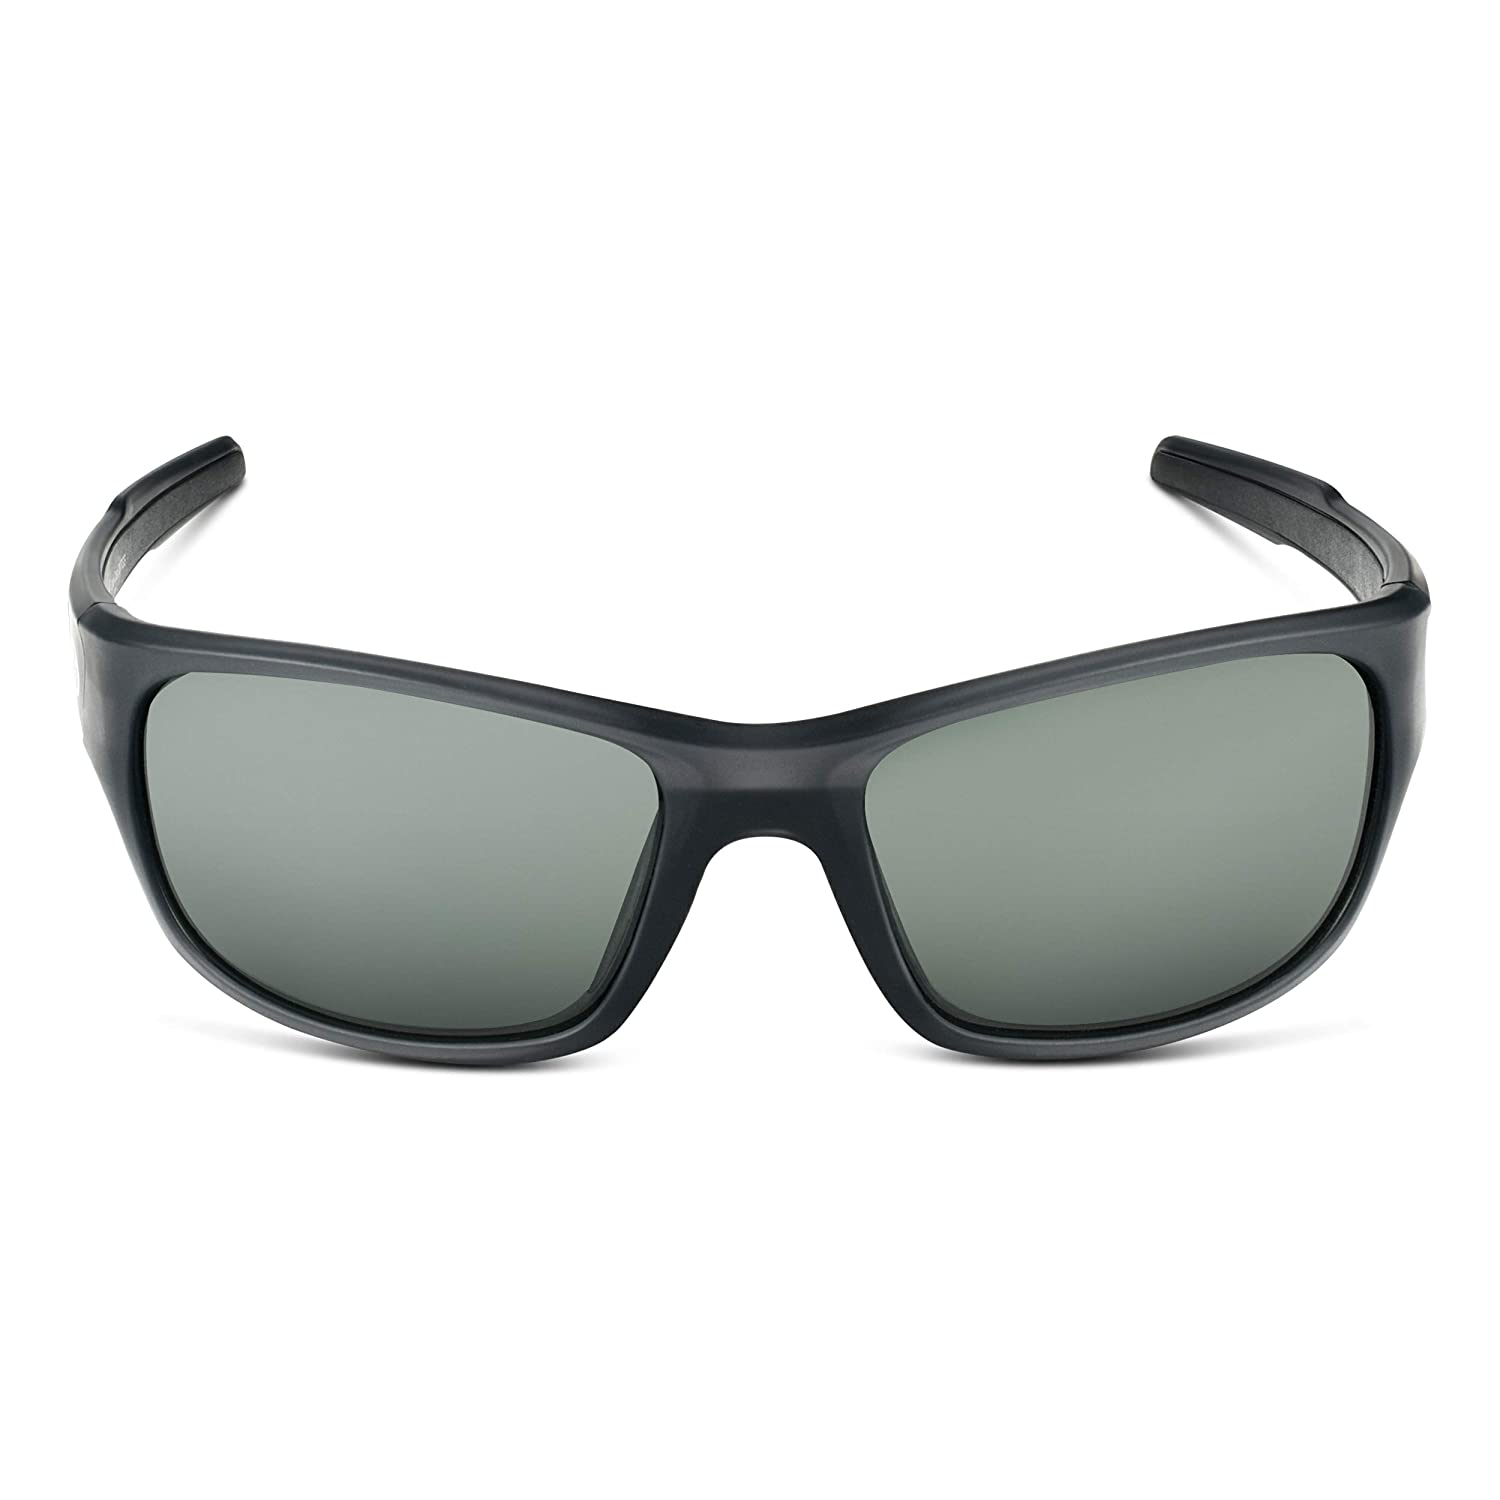 076a50faf3af Amazon.com  Flying Fisherman Last Cast Polarized Sunglasses for Men and  Women. Granite Frames and Smoke Lens with AcuTint UV Blocker for Fishing  and Outdoor ...